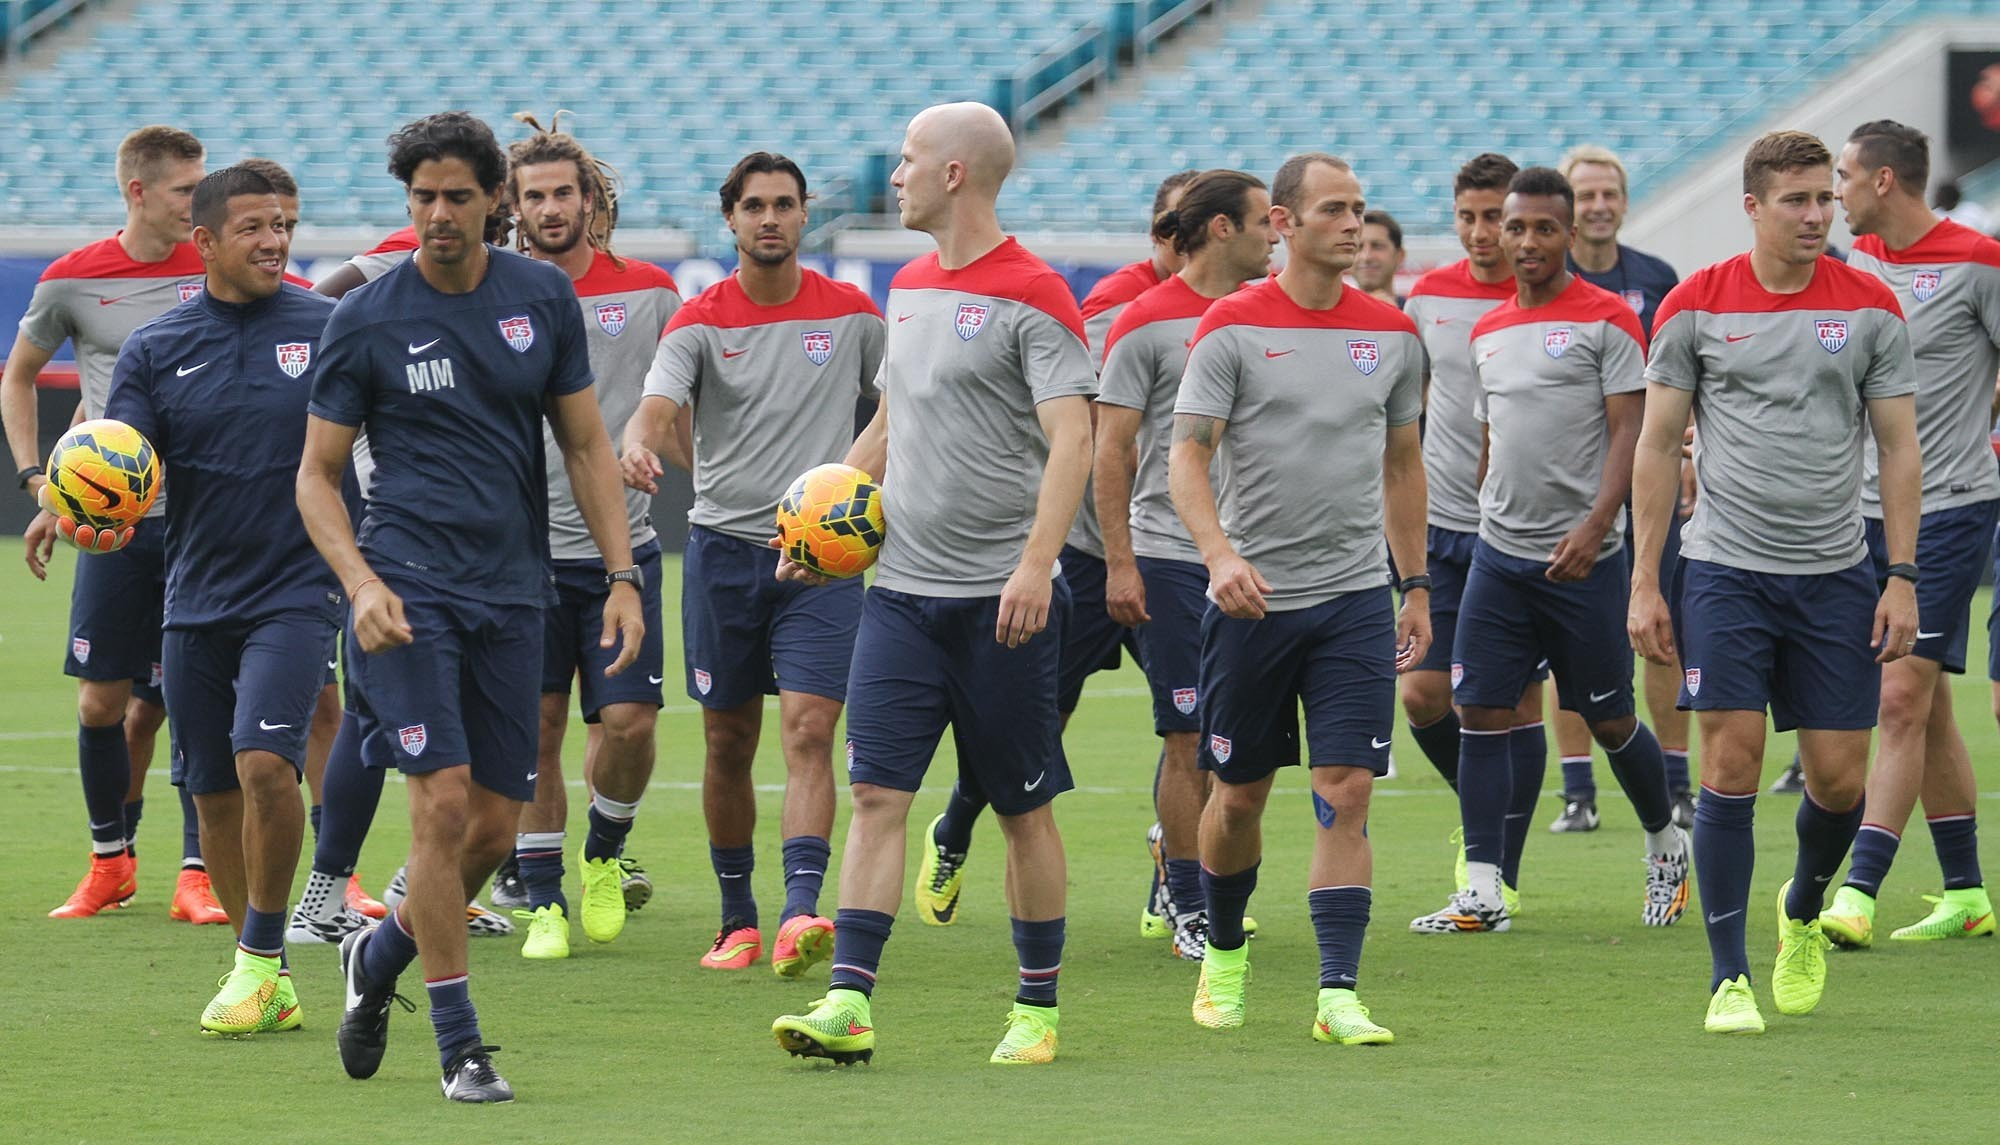 os-pictures-usa-national-soccer-team-practice--011